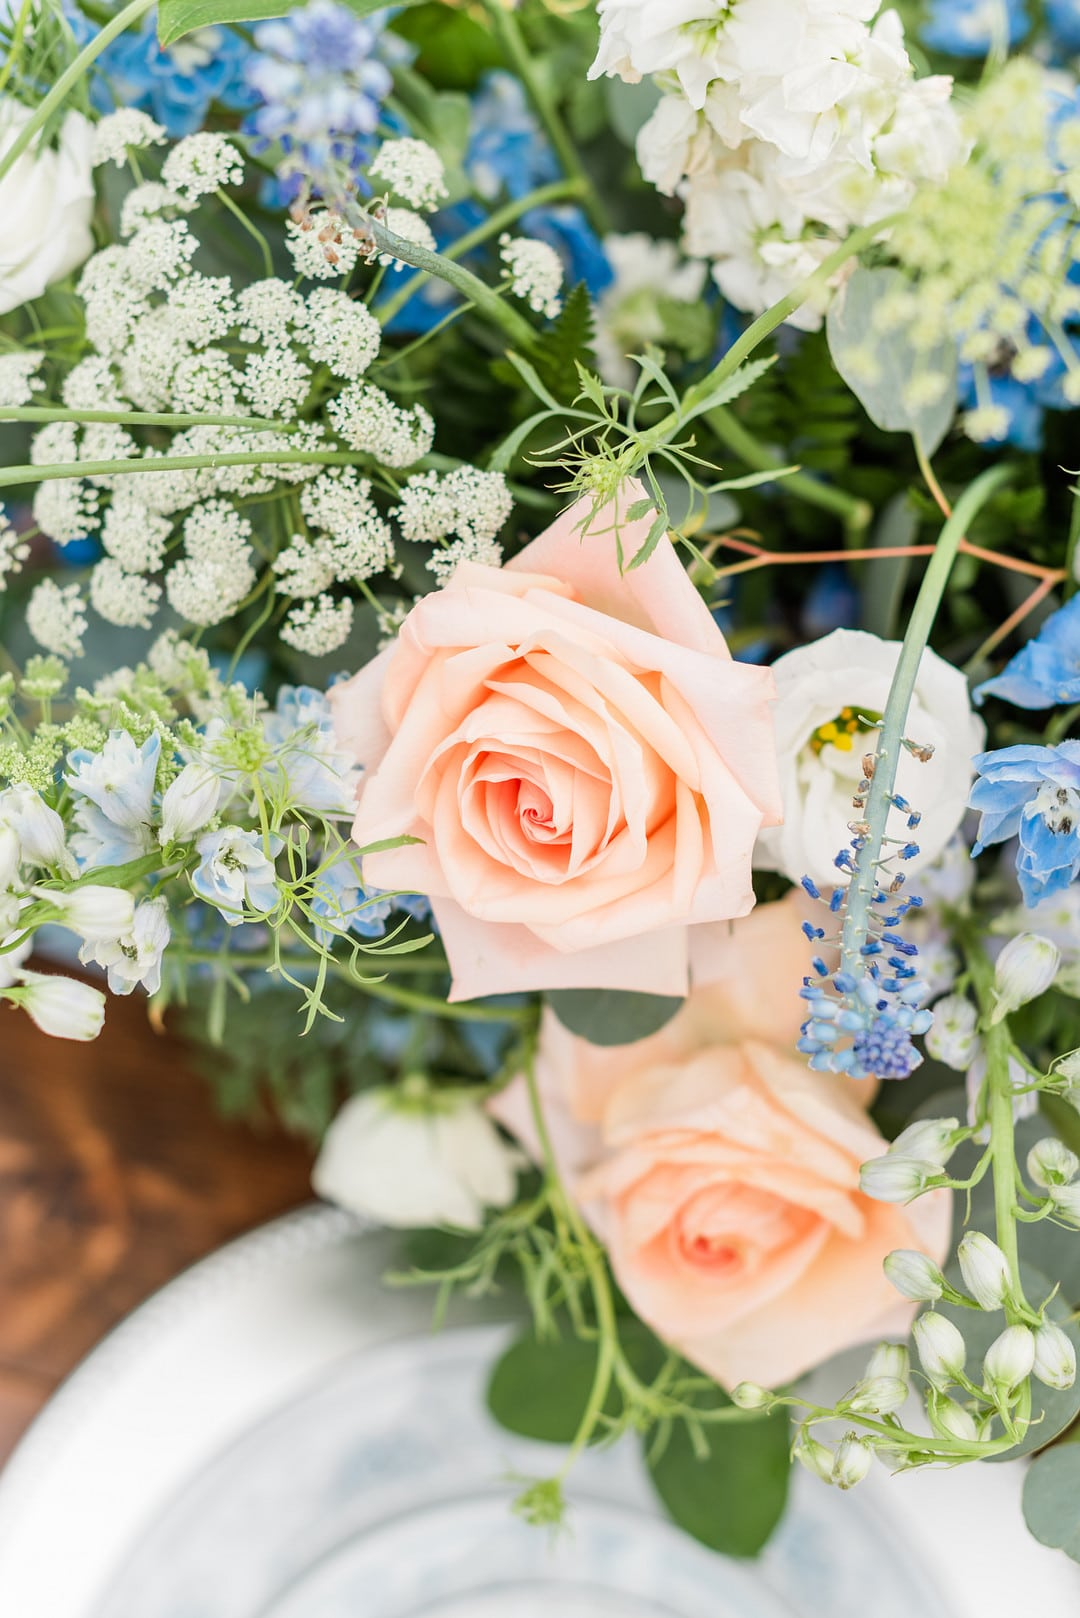 Romantic, Spring Styled Wedding with Horses on the Beach_Christine Austin Photography_©christineaustinphotography_2021_RomanticBeachStyledShoot_Decor_90_low